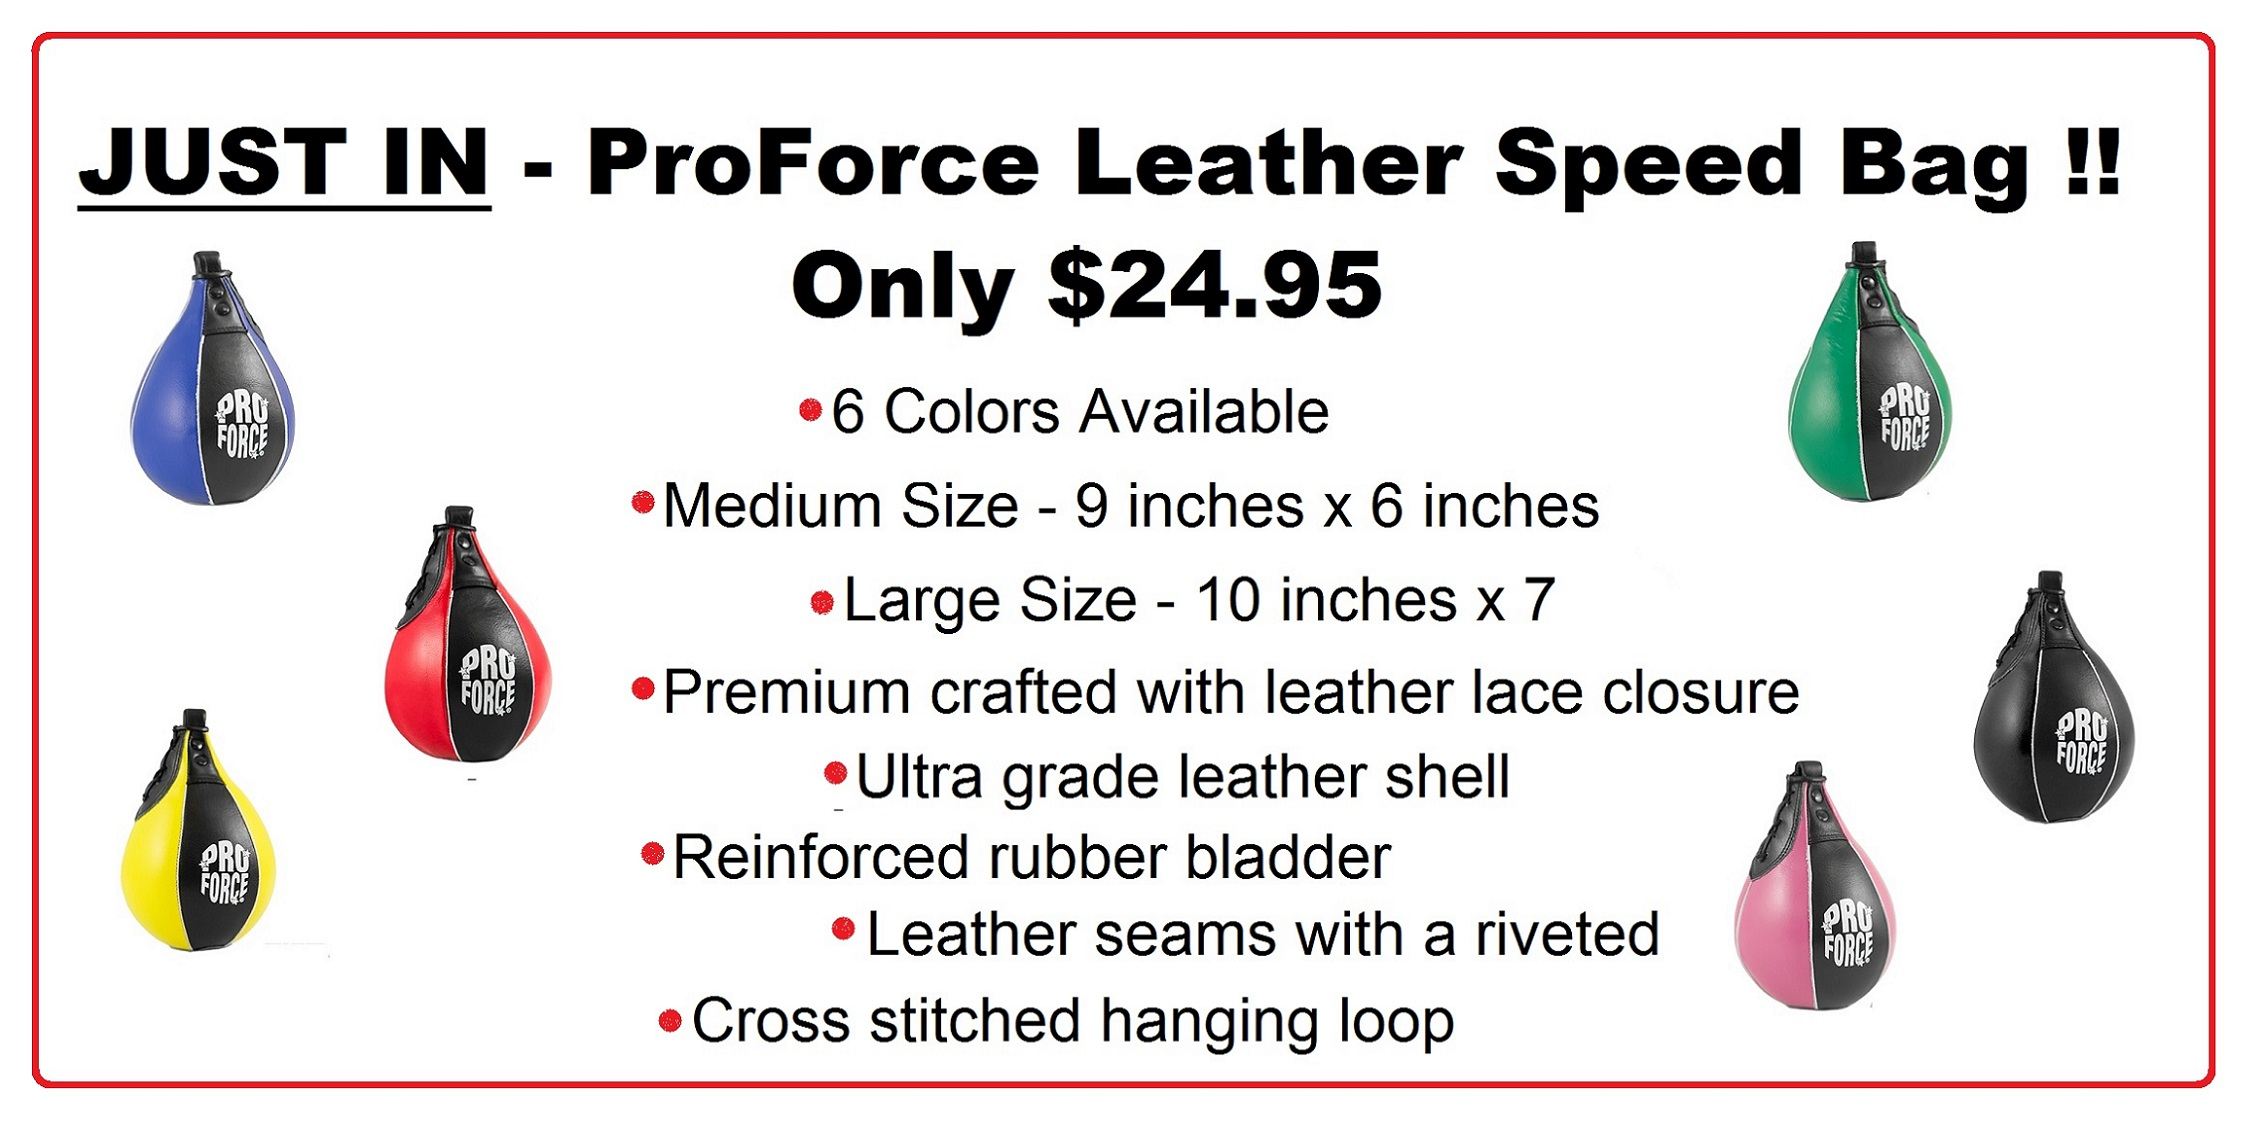 ProForce Leather Speed Bag